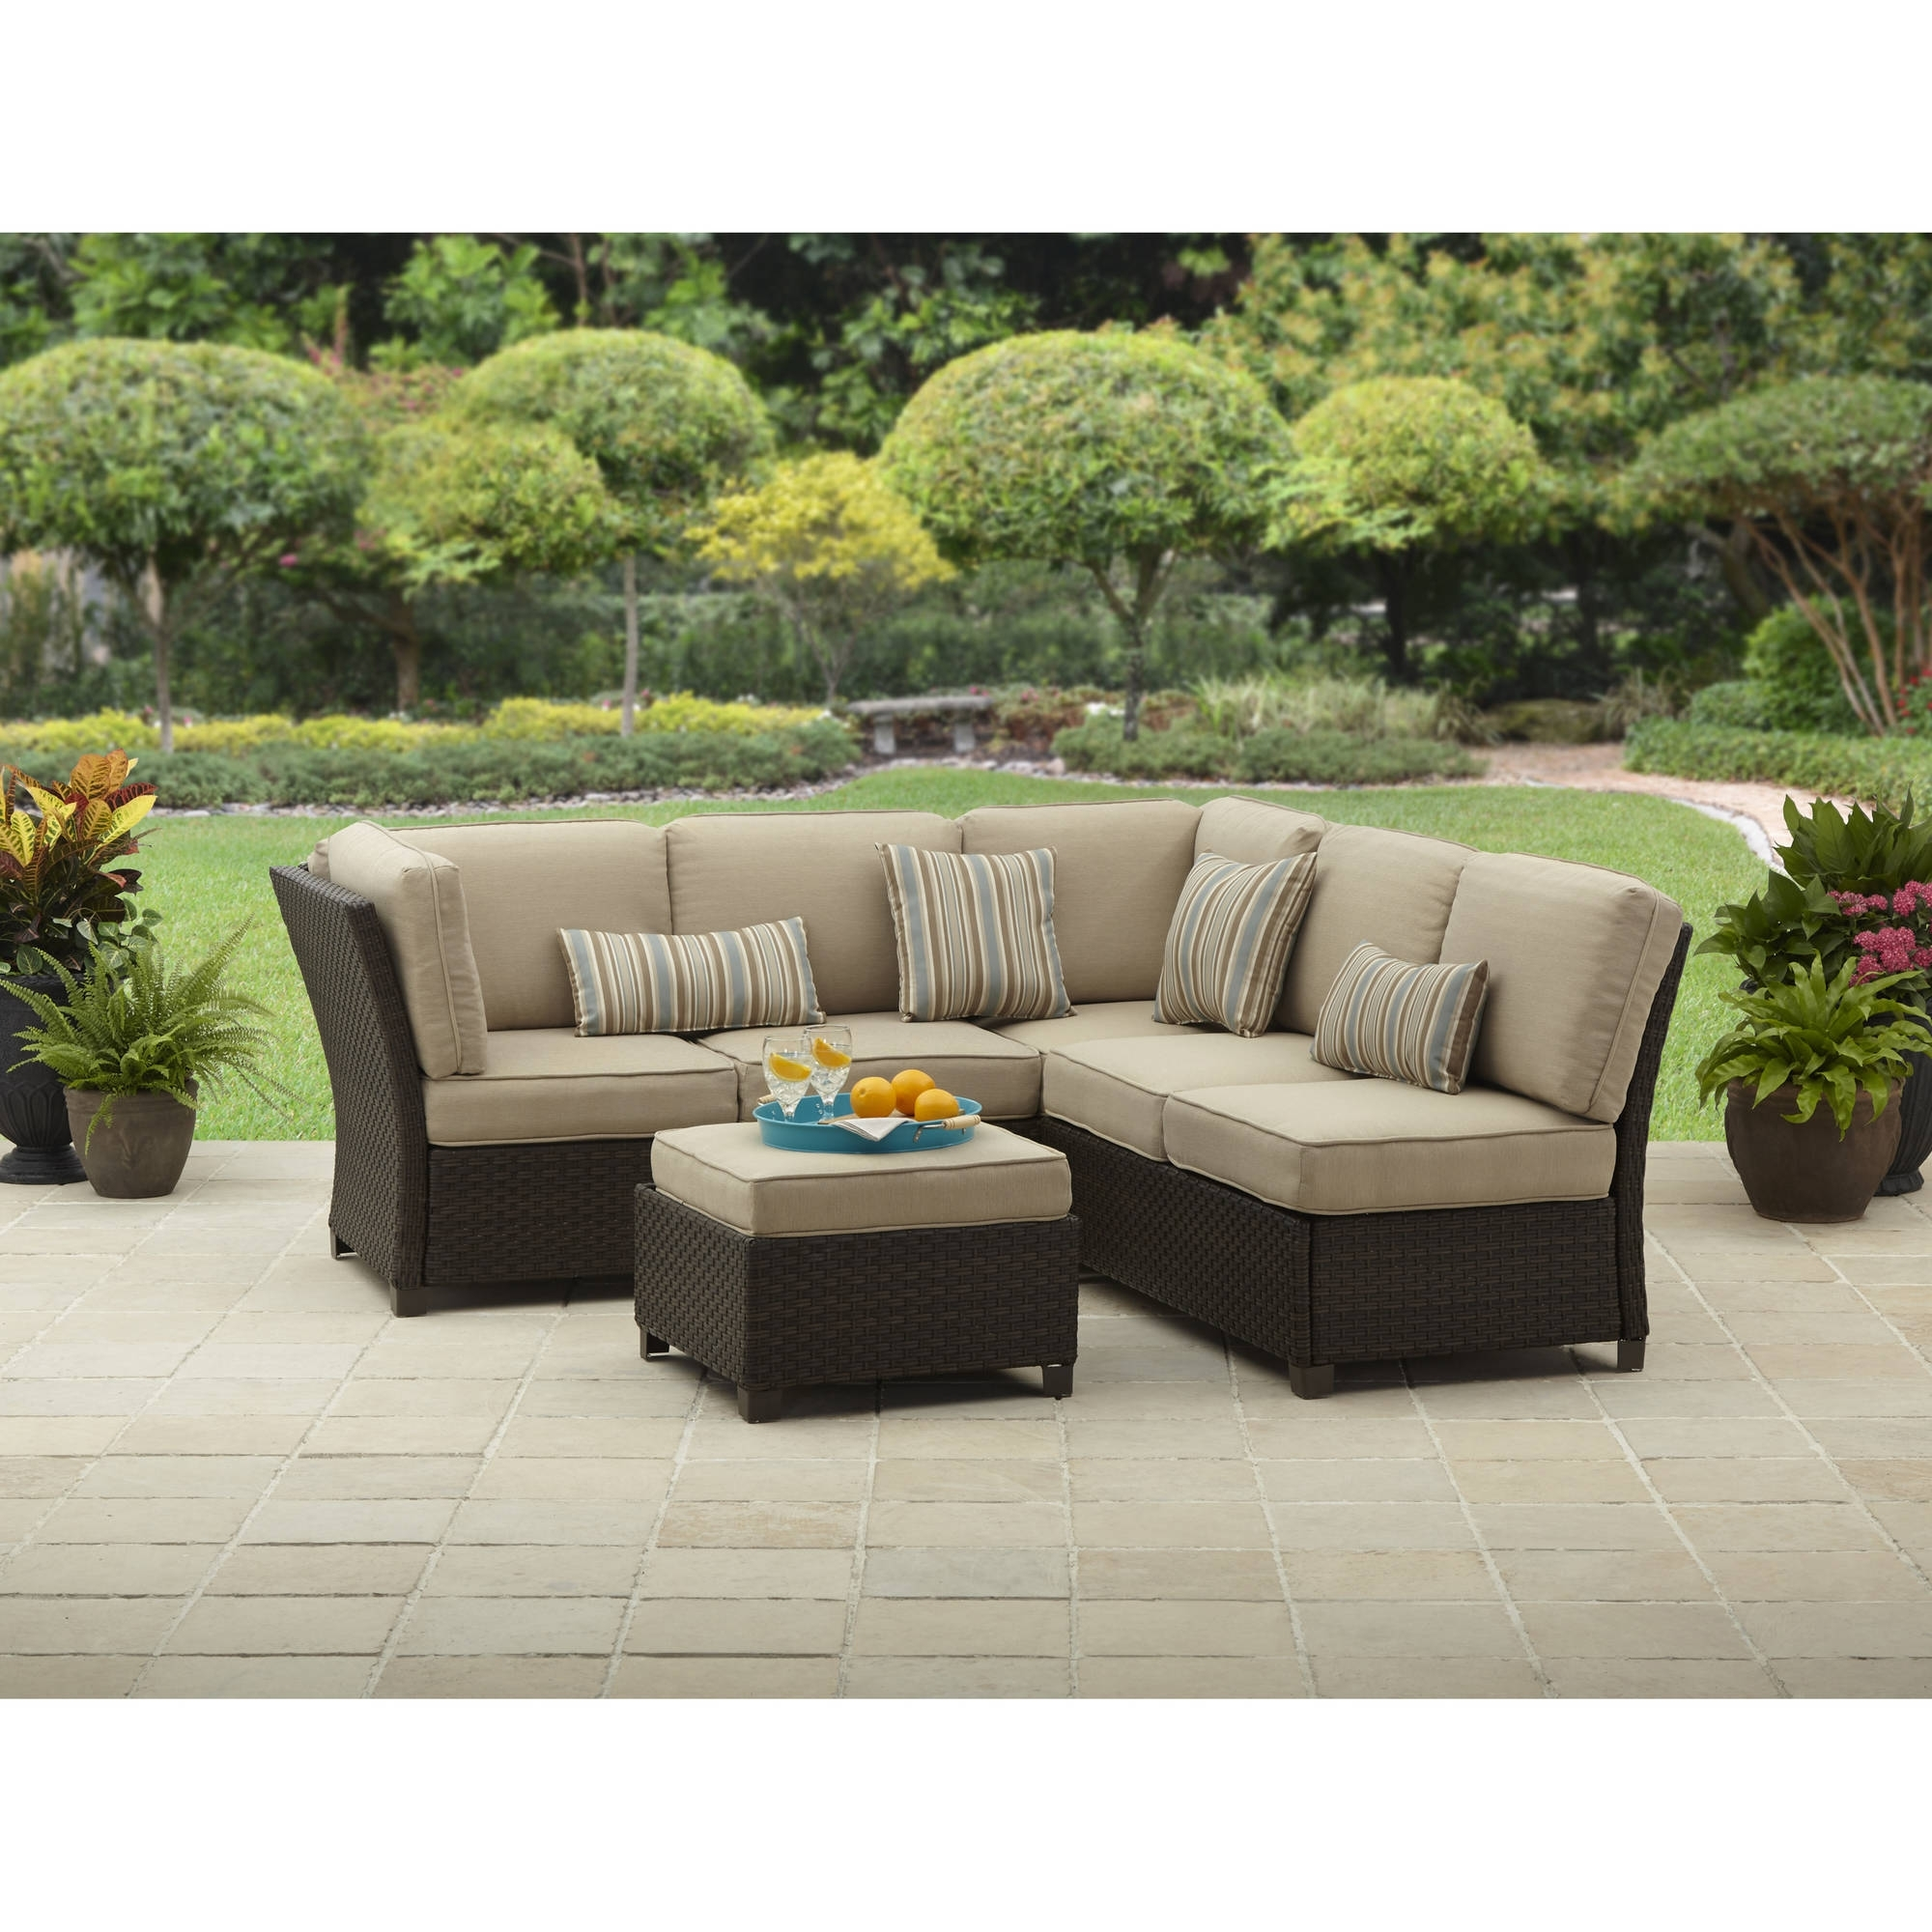 Better Homes And Gardens Cadence Wicker Outdoor Sectional Sofa Set Regarding Sectional Sofas At Walmart (Image 1 of 10)